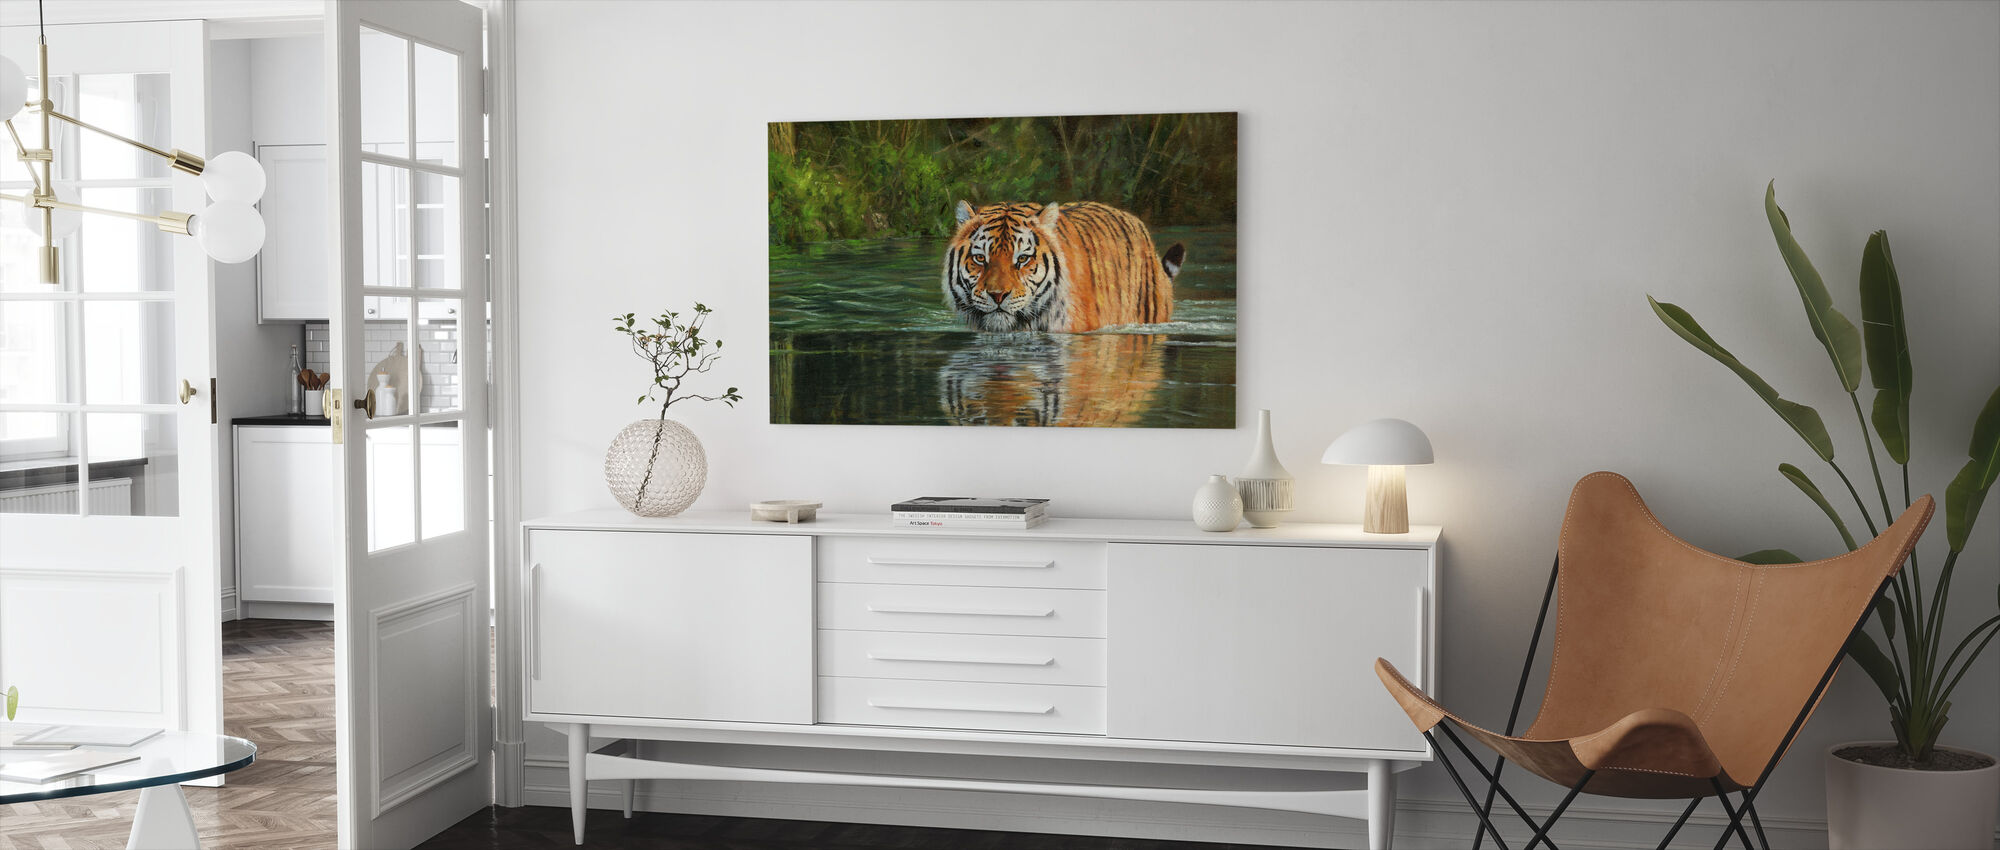 Tijger in Water - Canvas print - Woonkamer